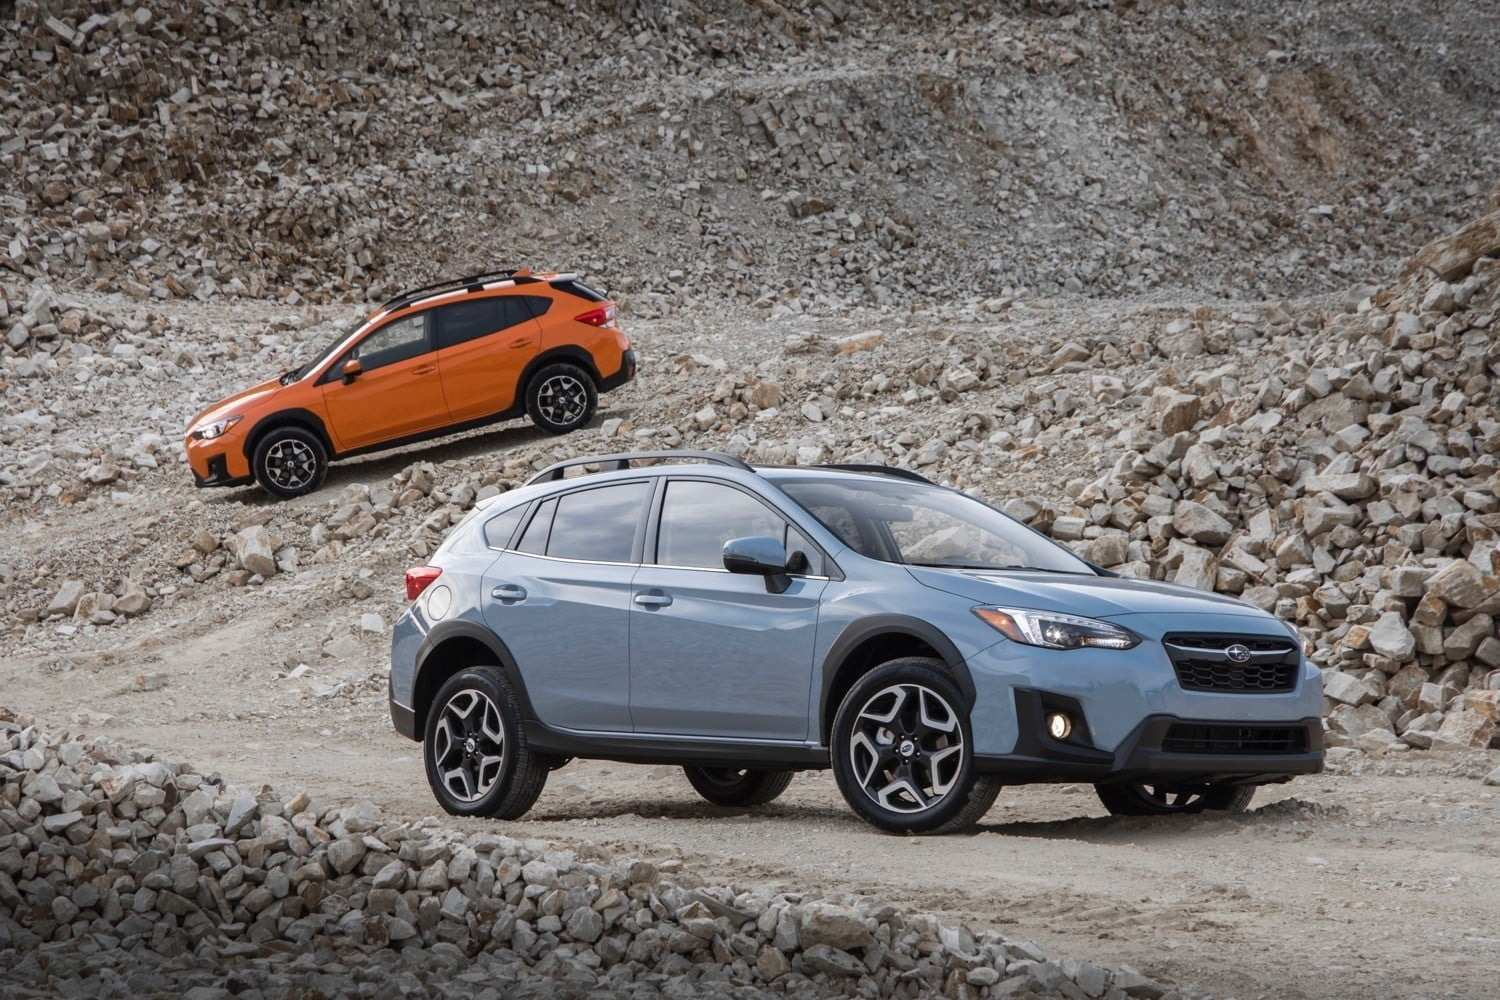 56 Best Review The New Subaru 2019 Review Specs And Release Date Concept by The New Subaru 2019 Review Specs And Release Date